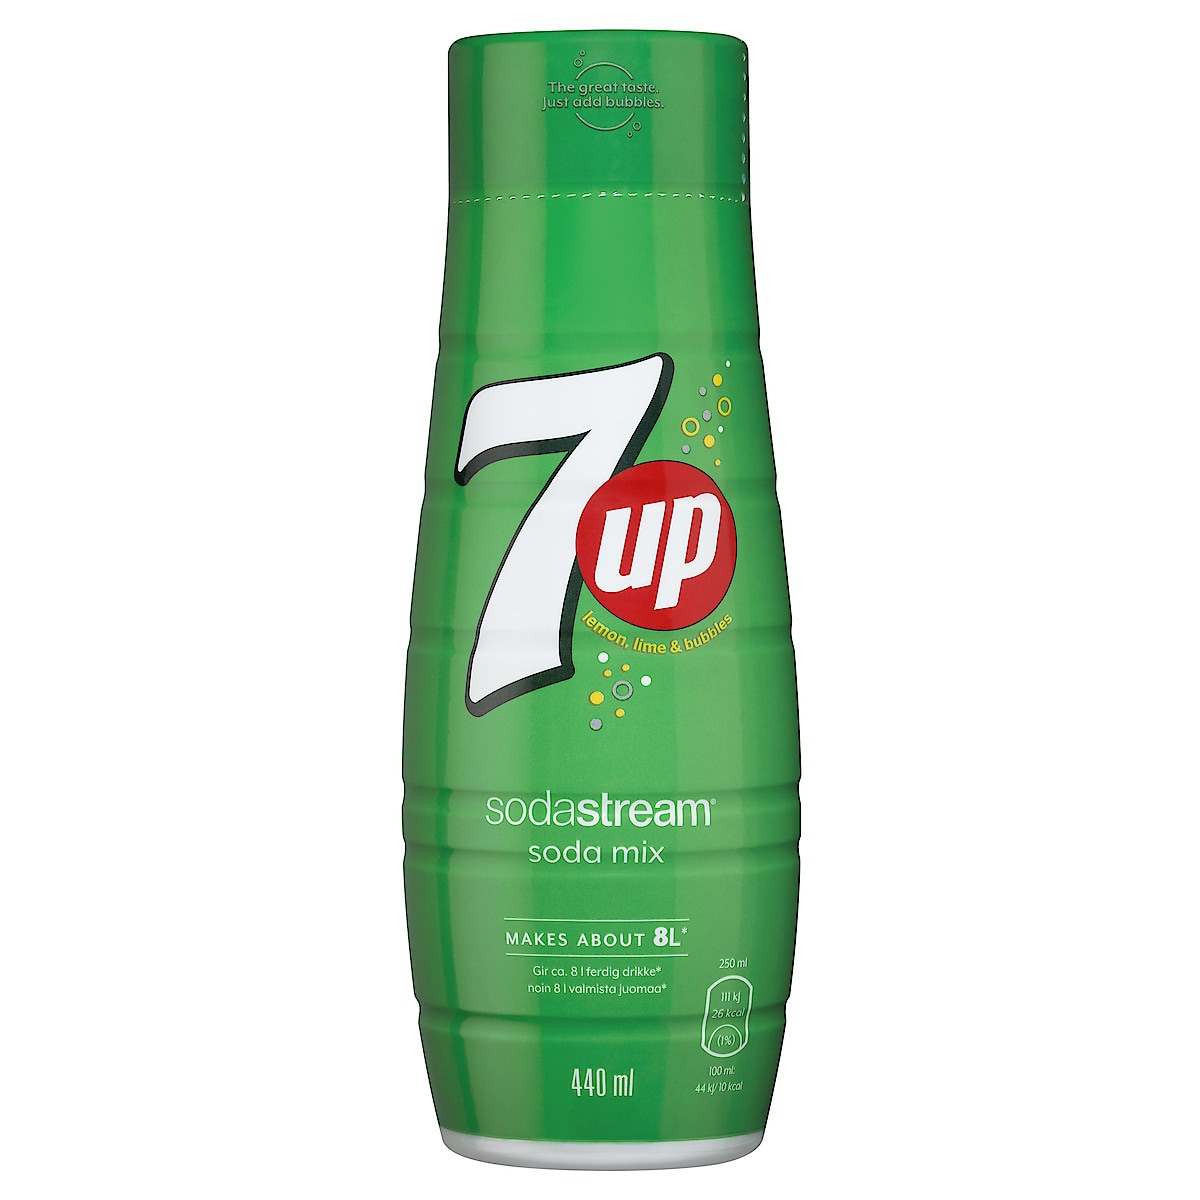 Sodastream Pepsi 7UP smakkoncentrat 440 ml